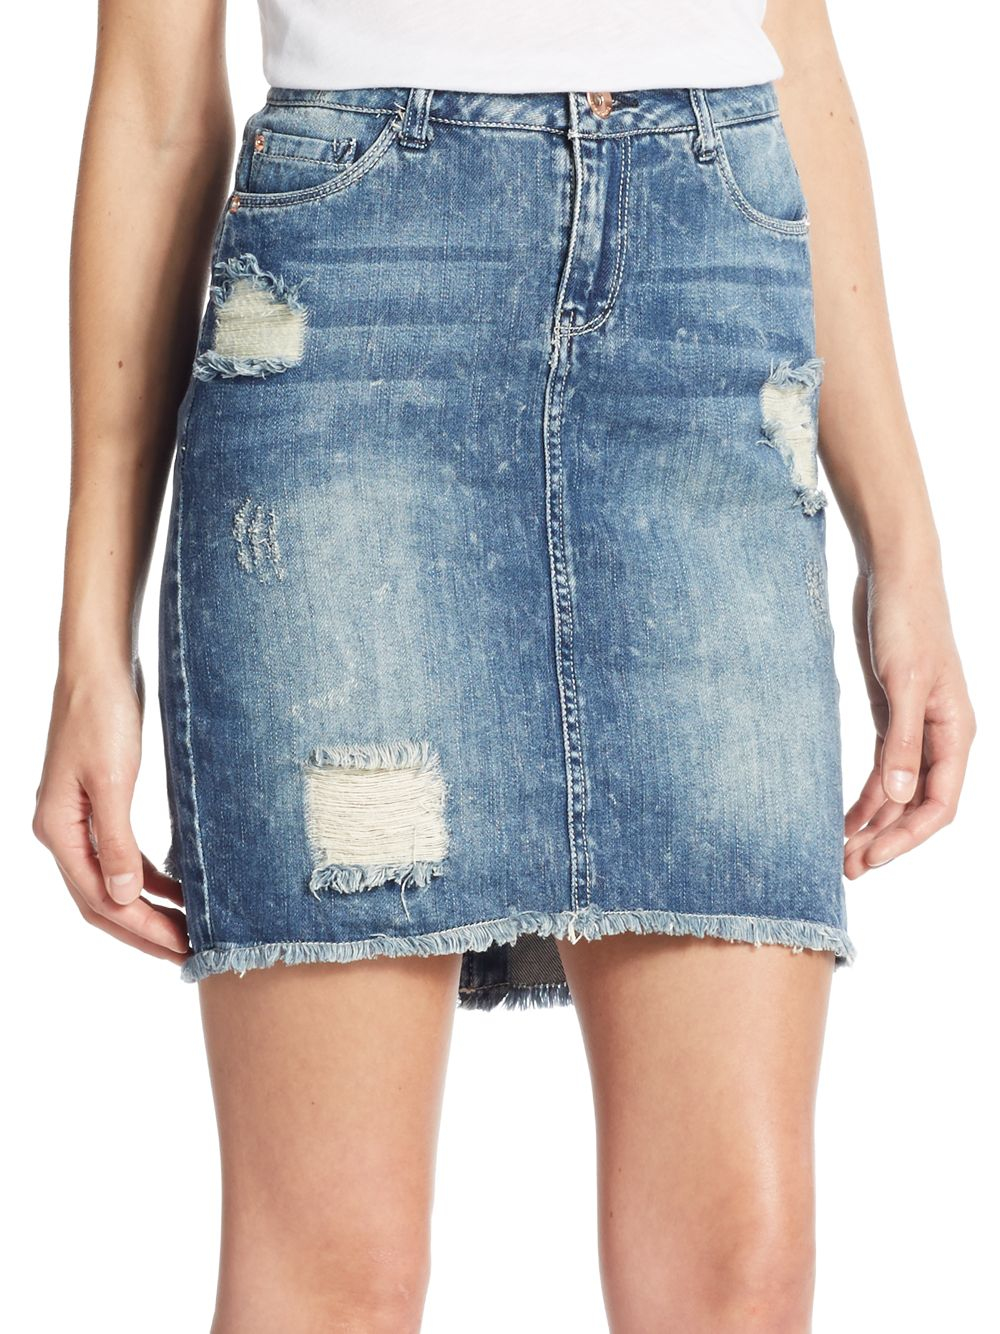 Kensie Distressed Denim Mini Skirt in Blue | Lyst